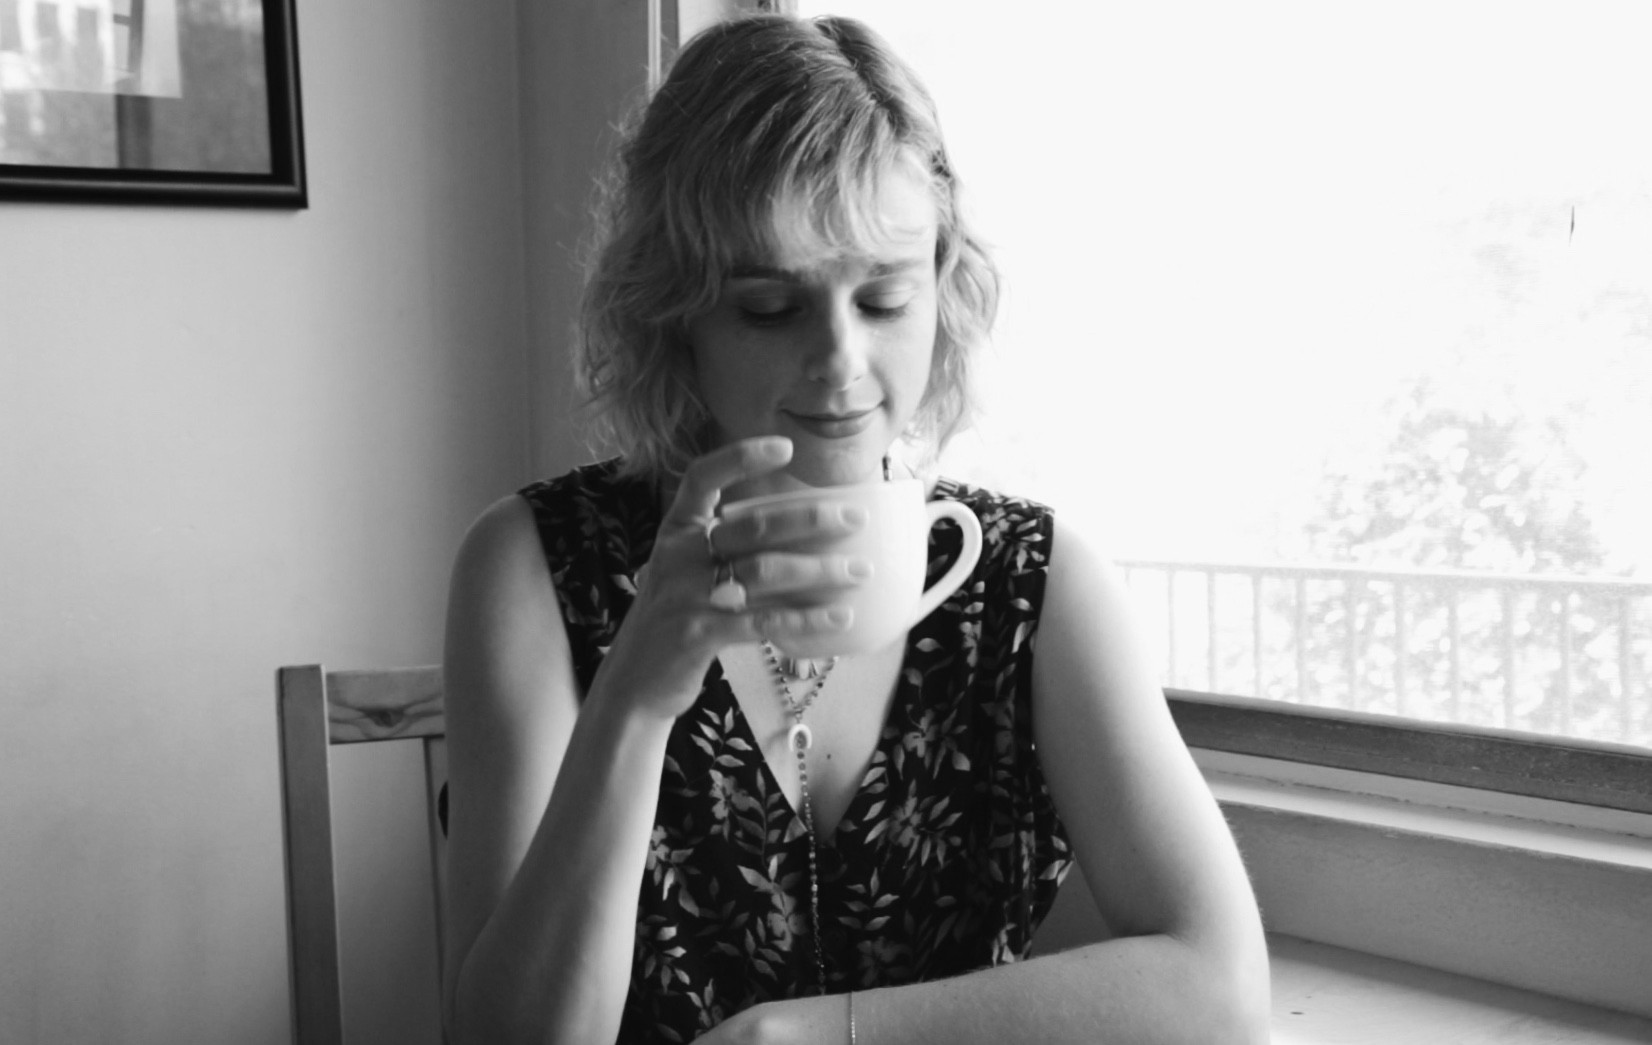 A black and white photo of a woman drinking a cup of coffee by a window in her home.